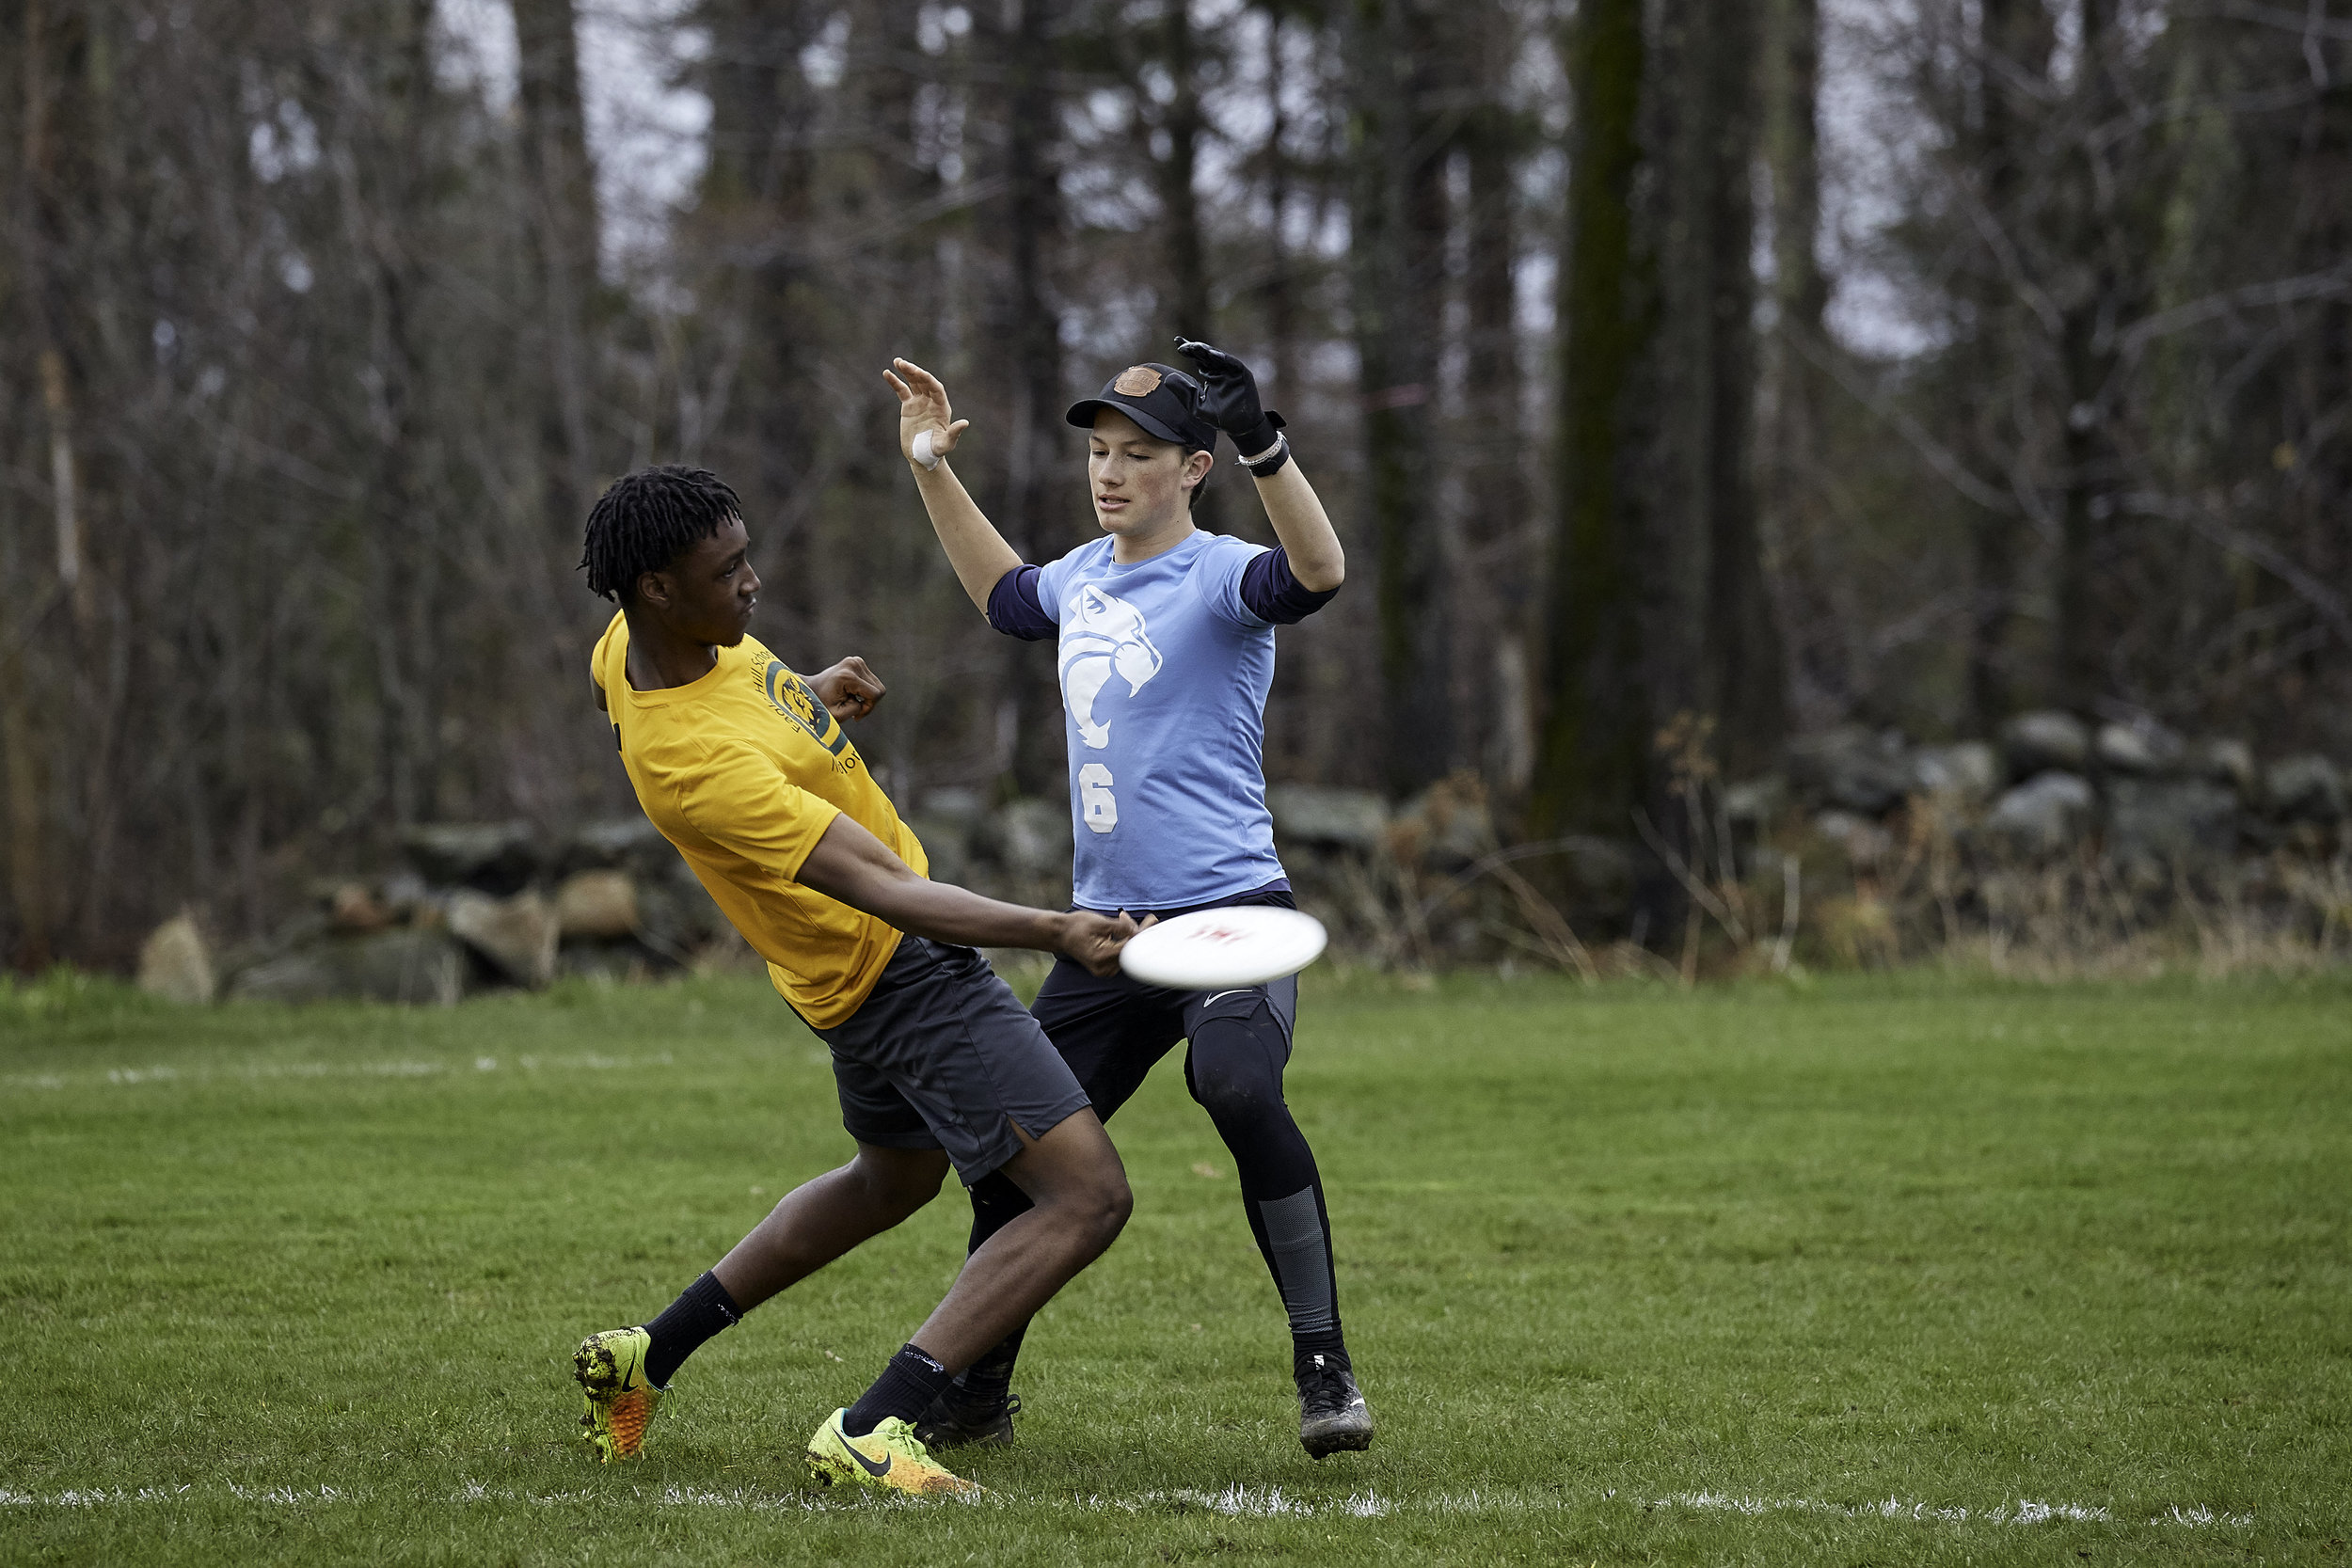 Ultimate Frisbee vs. Eagle Hill School - May 3, 2019 - 188414.jpg